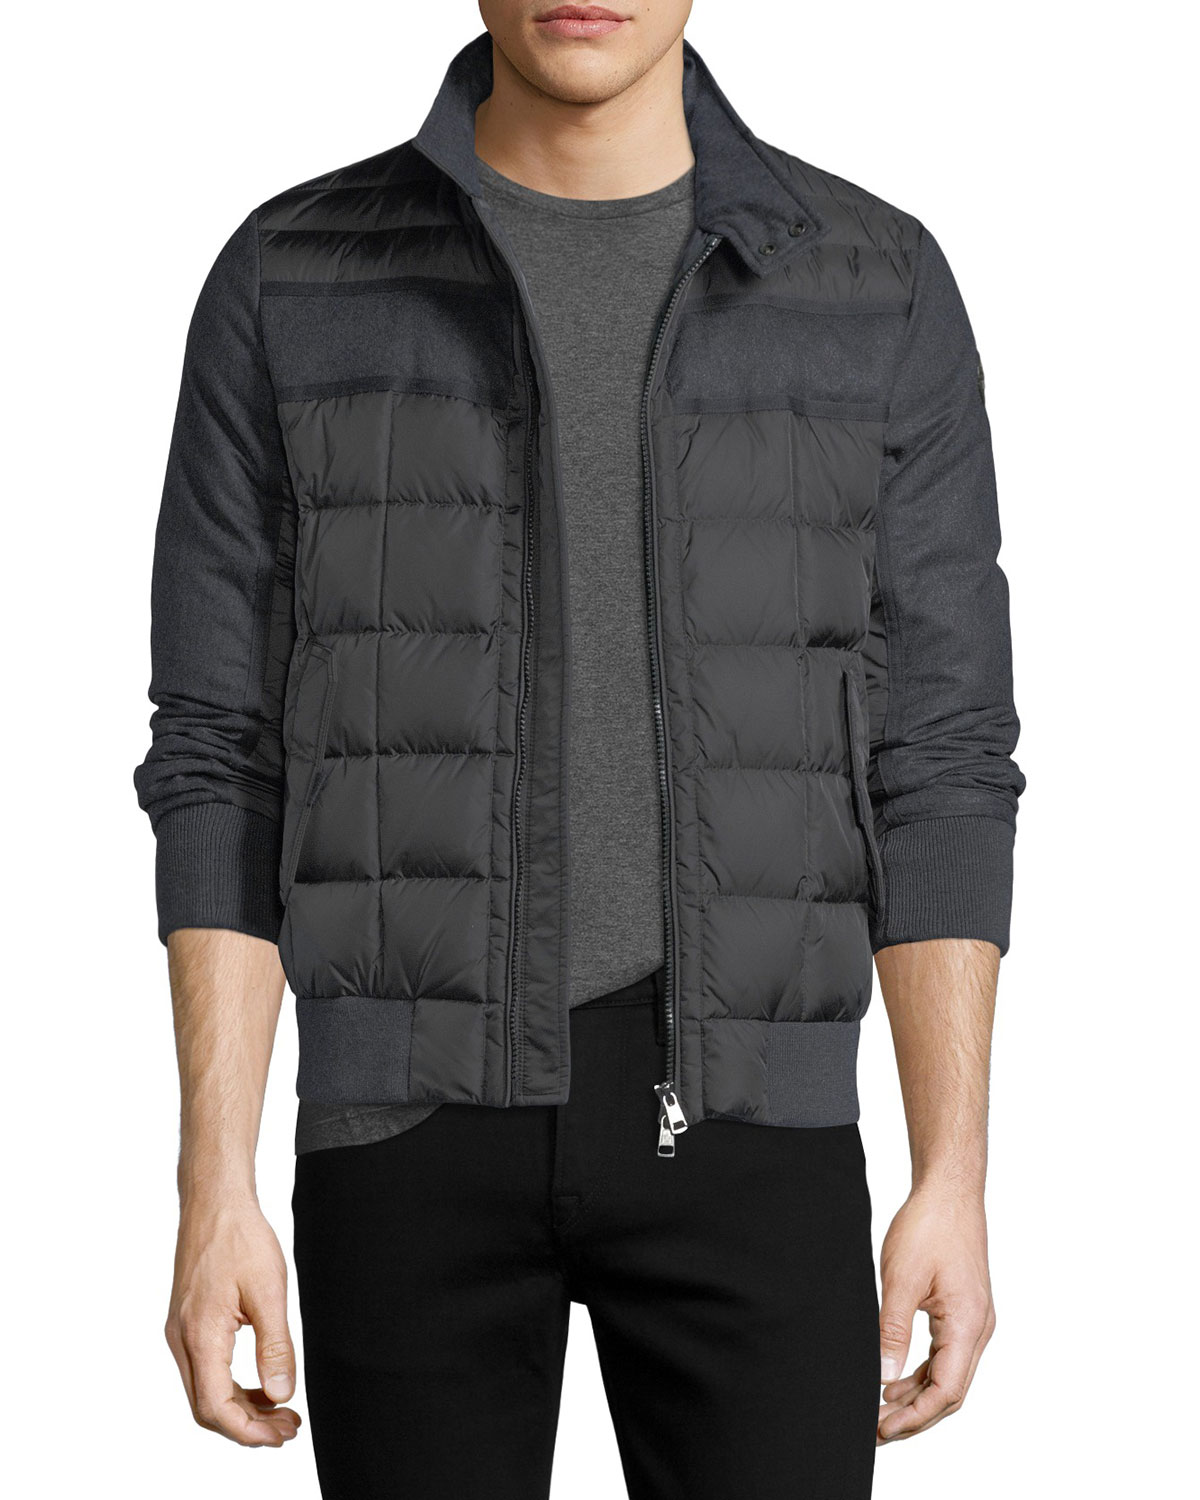 moncler mens jackets for sale